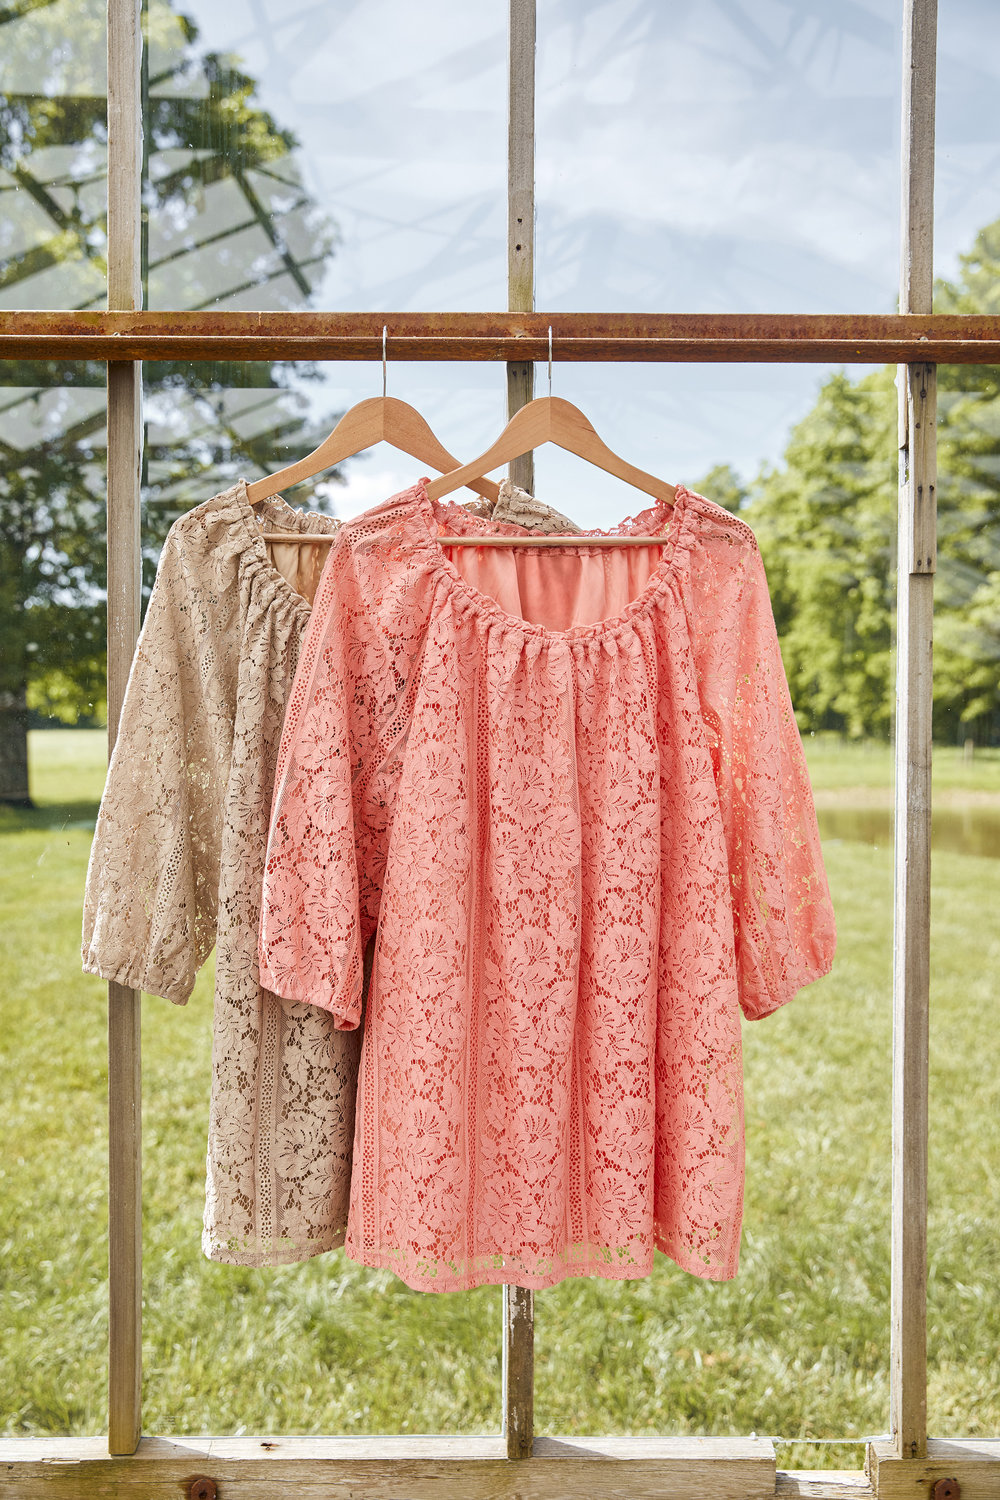 brown and pink lace shirts hanging in window frame on sunny day